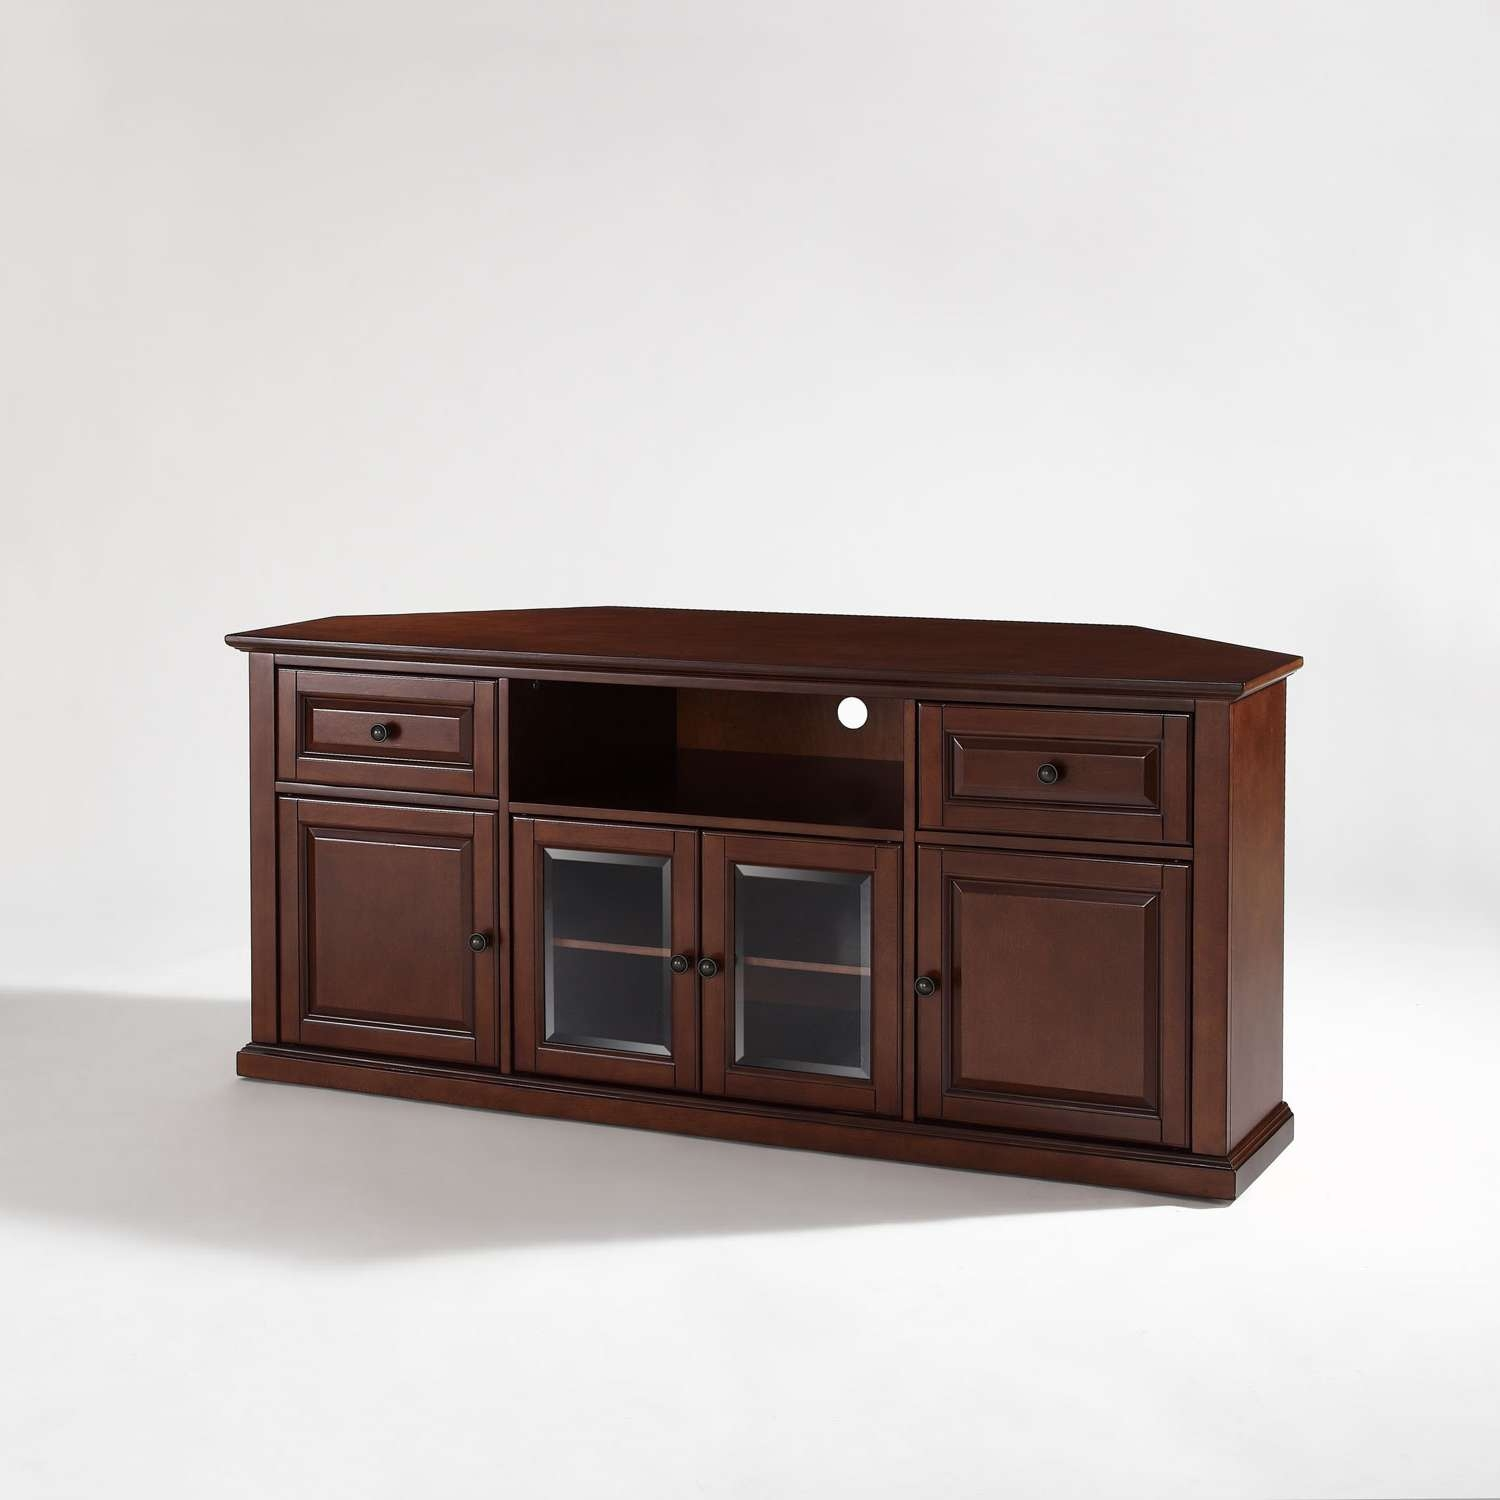 Tv Stand : Amazon Com Leick Oak Leaded Glass Corner Tvd Kitchen Throughout Solid Wood Corner Tv Stands (View 18 of 20)